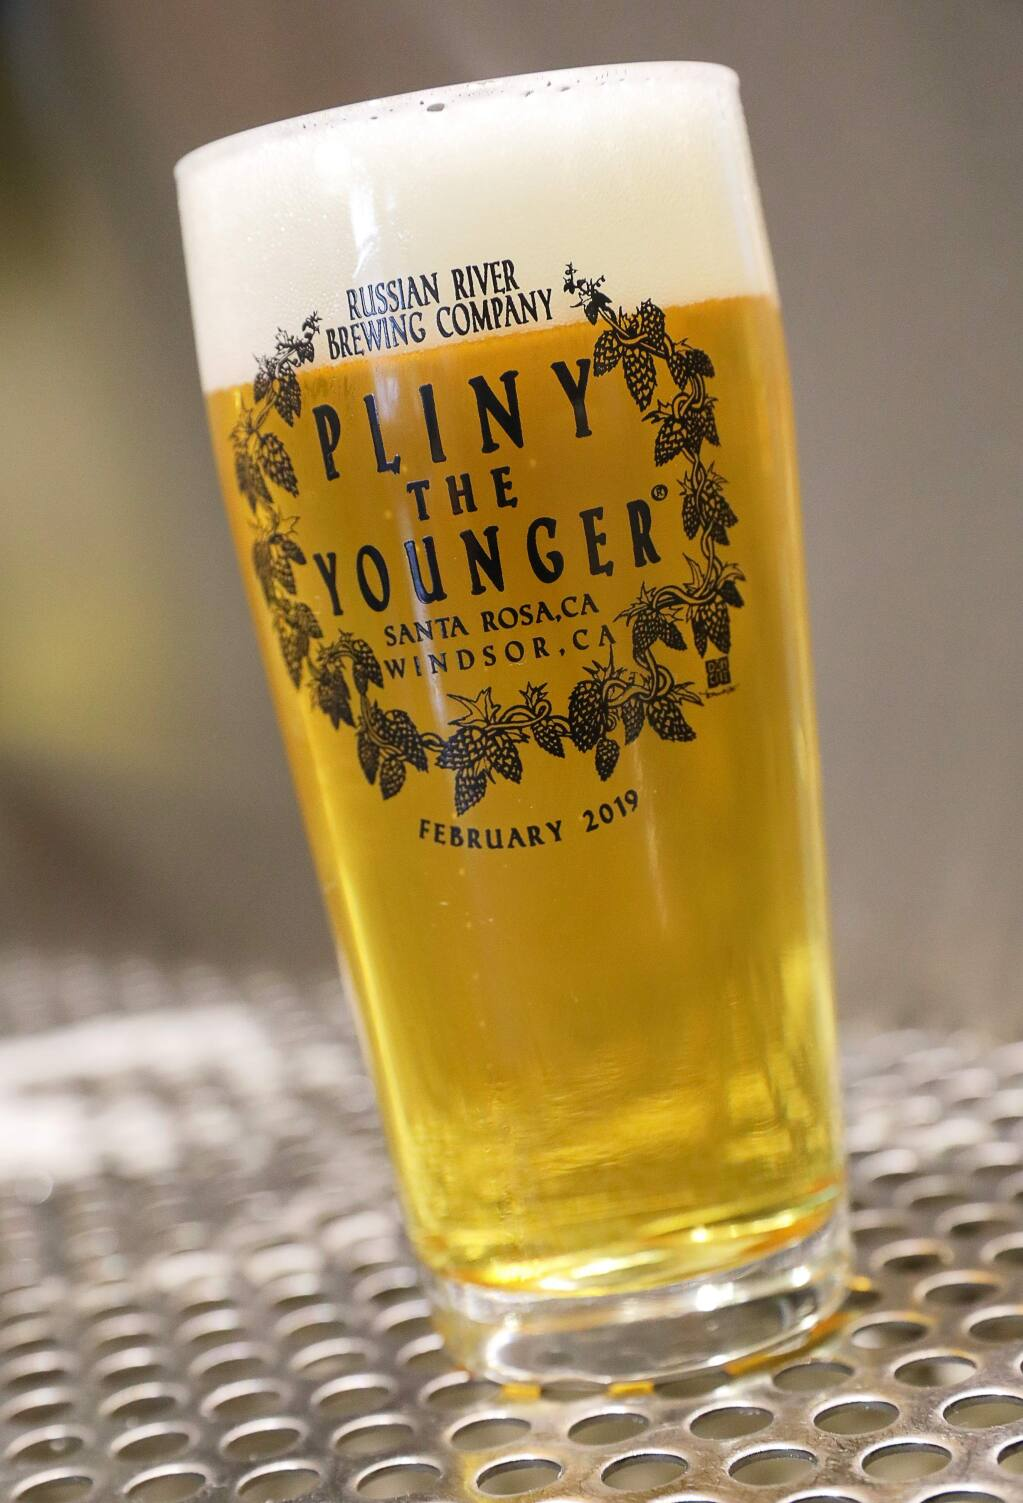 A souvenir glass commemorating this year's Pliny the Younger release. (Christopher Chung/ The Press Democrat)